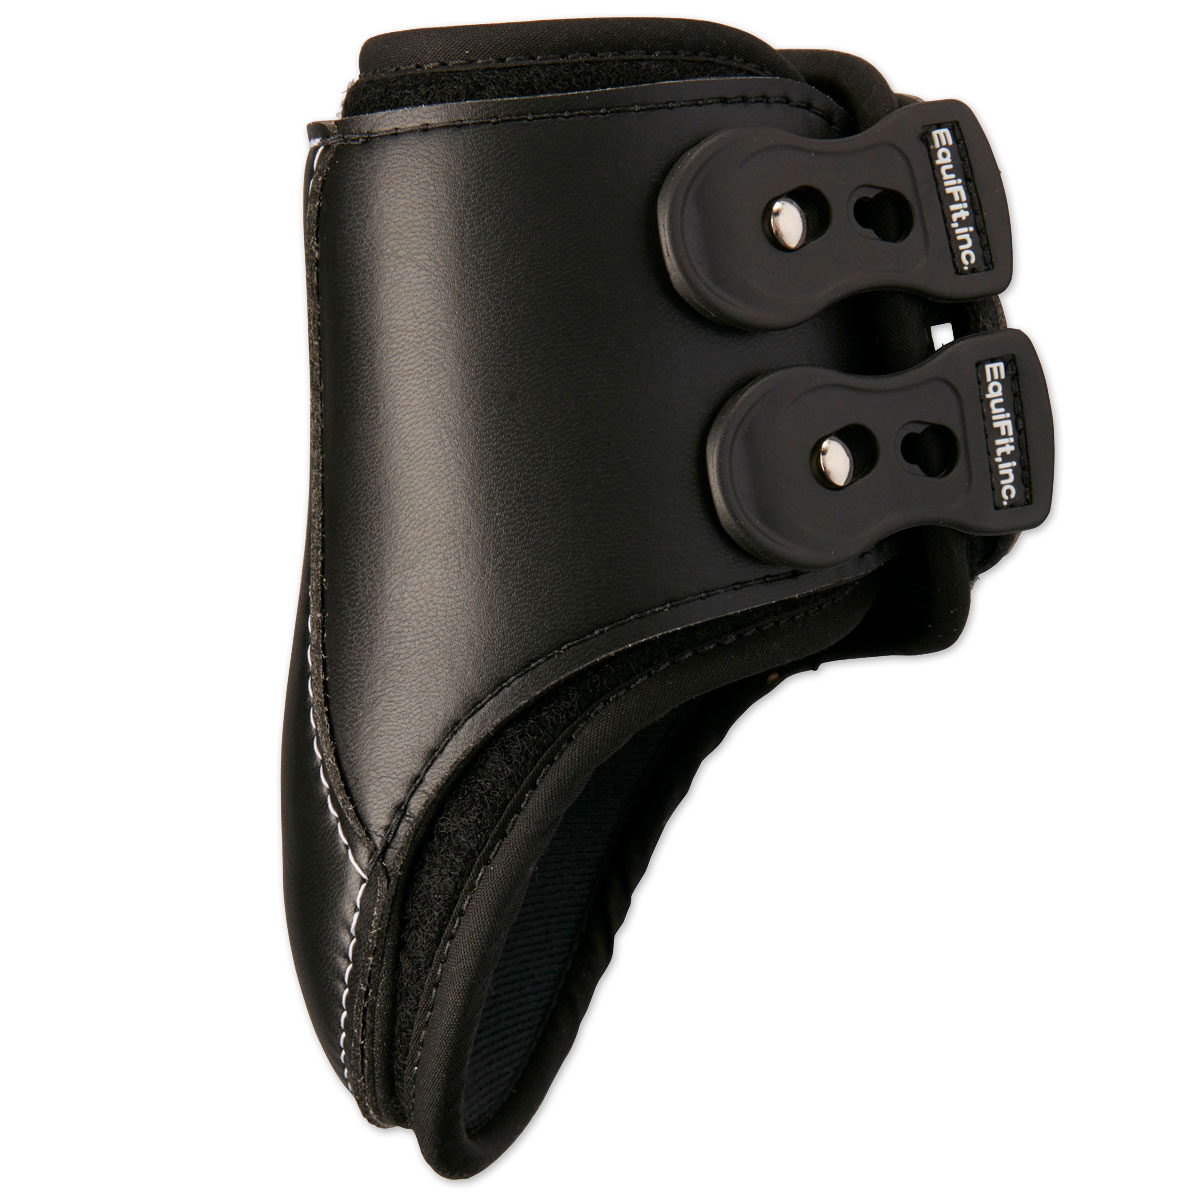 EquiFit EXP3 w Tab Closure Hind